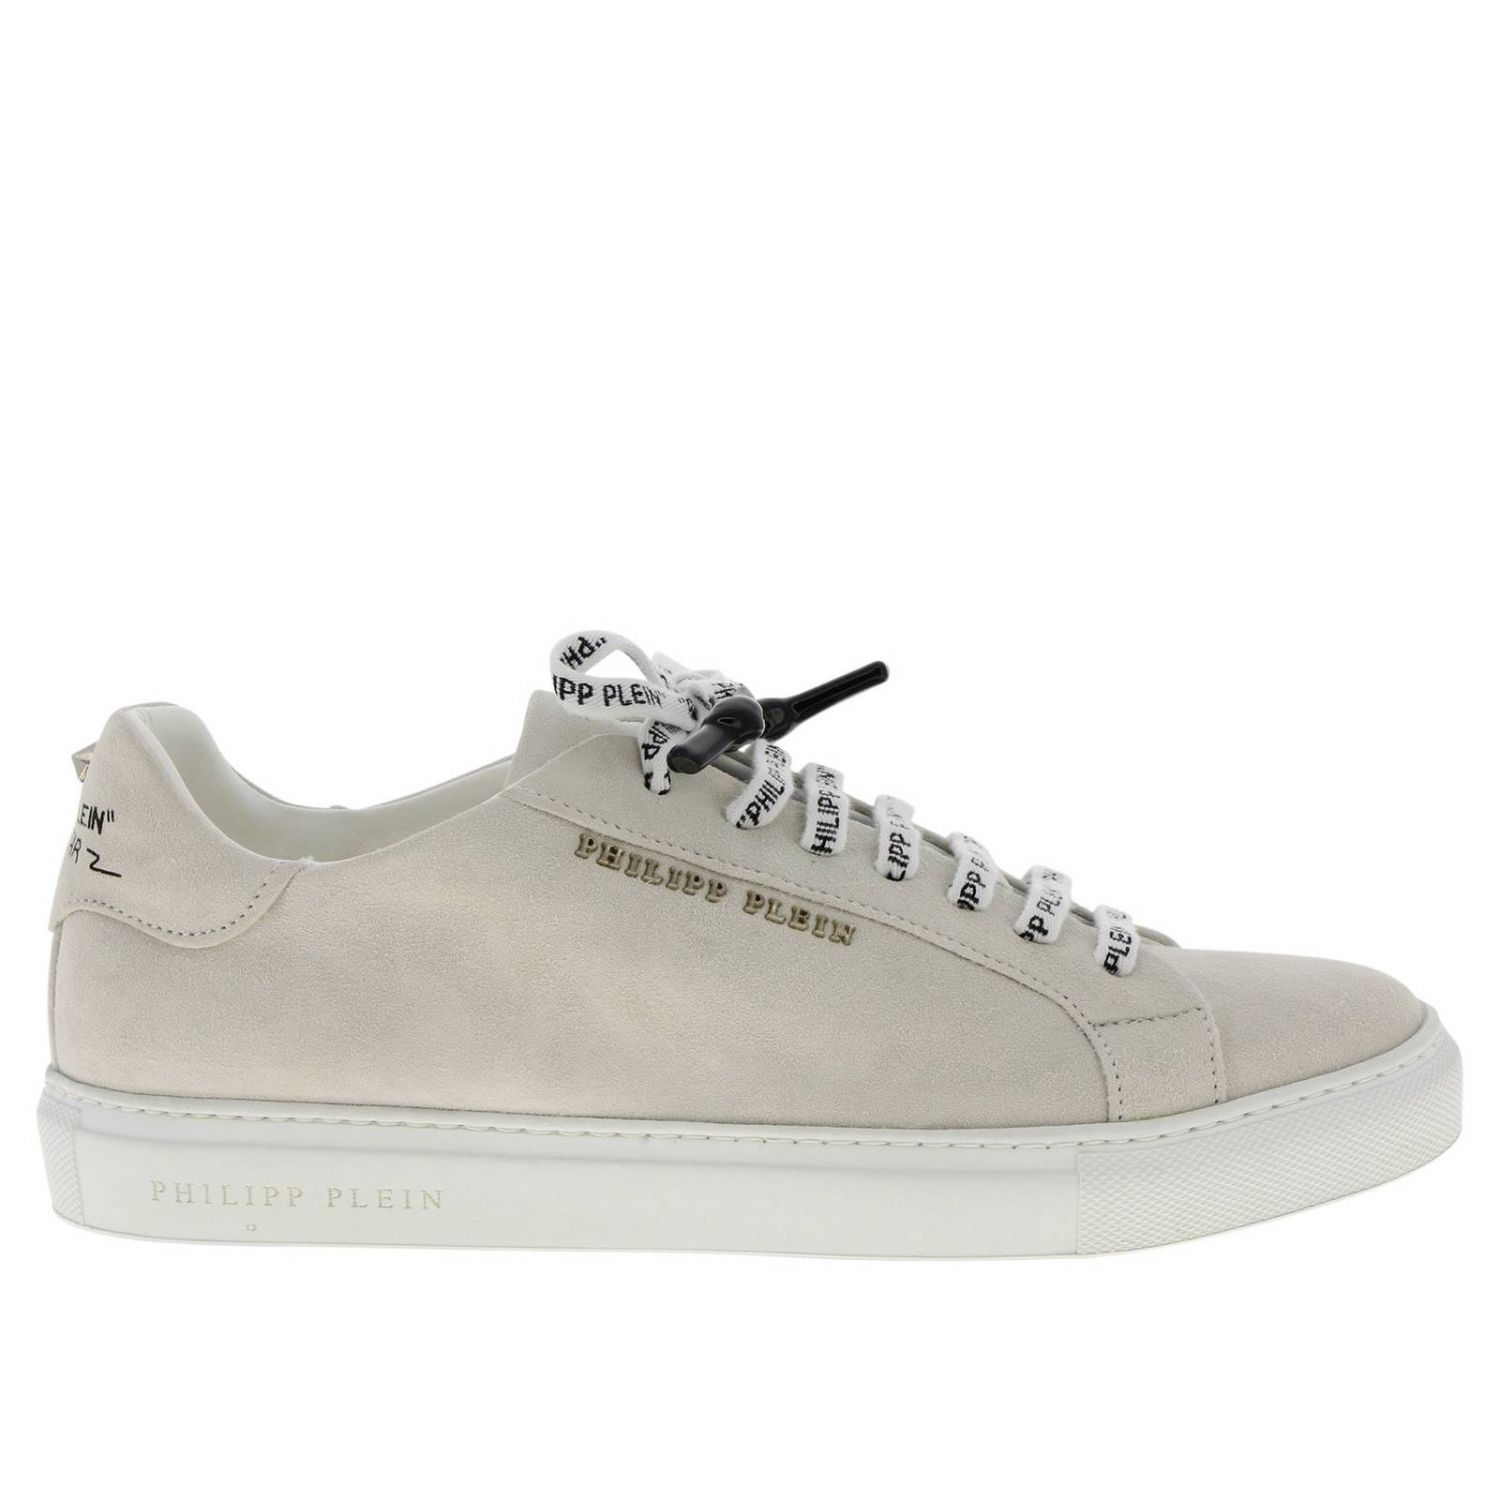 Shoes men Philipp Plein white 1